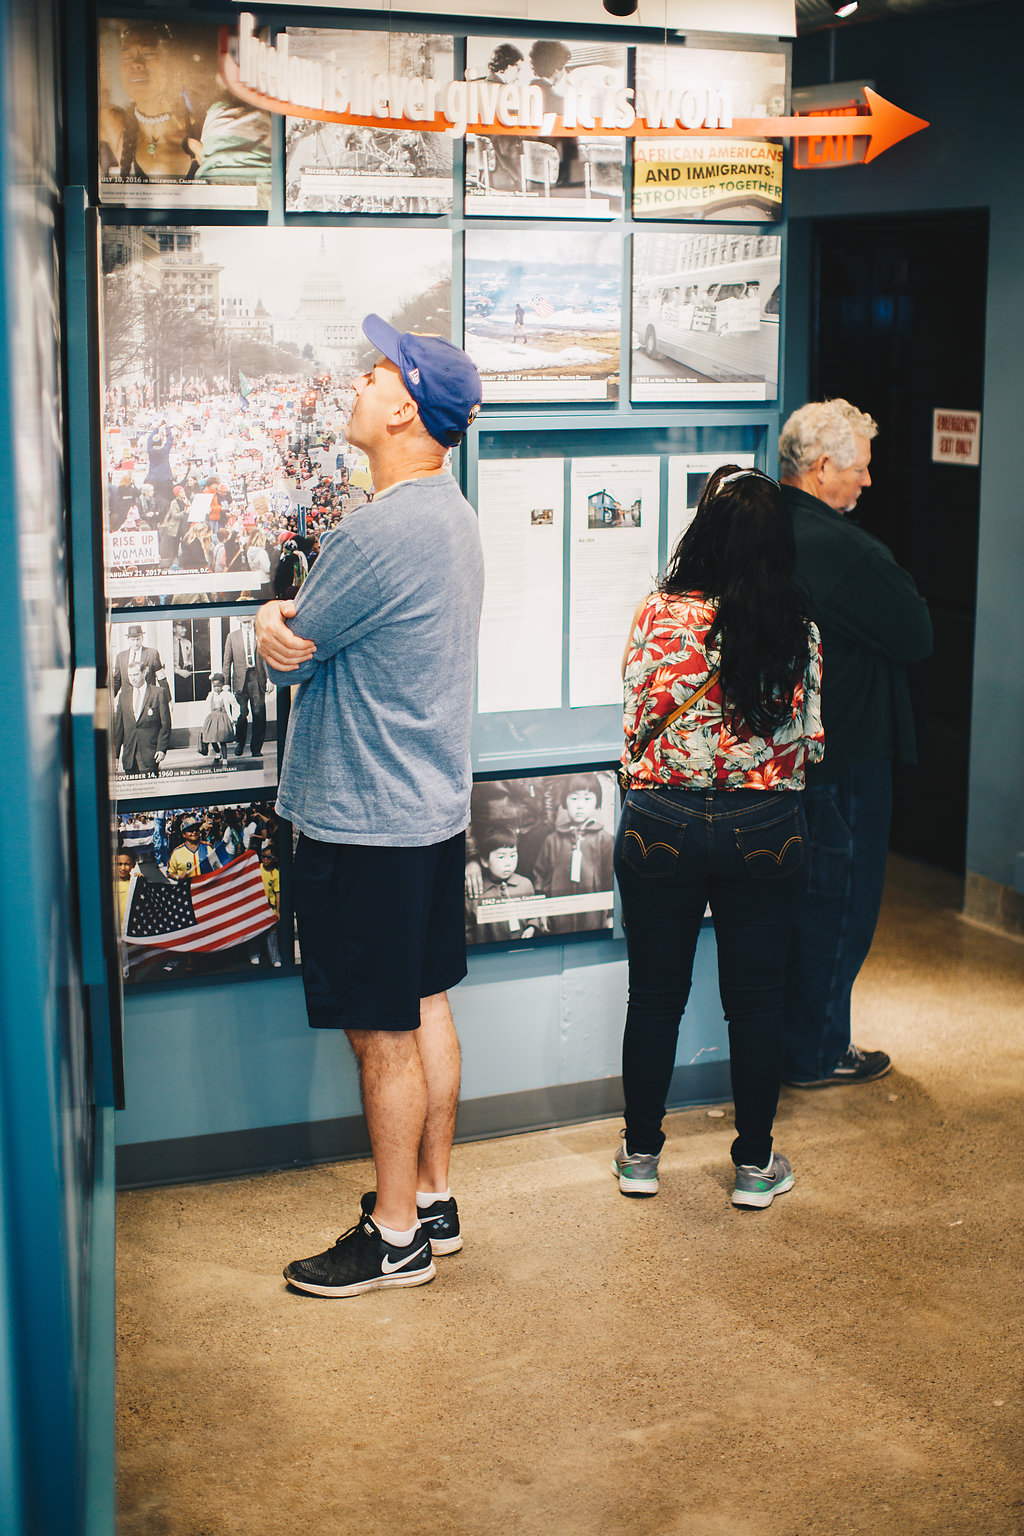 Figure 5. Museum visitors explore the photo wall in theFreedom Gallery and connect to events related to freedomfrom theCivil War era to present. Courtesy of Niagara FallsUnderground Railroad Heritage Center. Photo by AlanadetolartsPhotography.